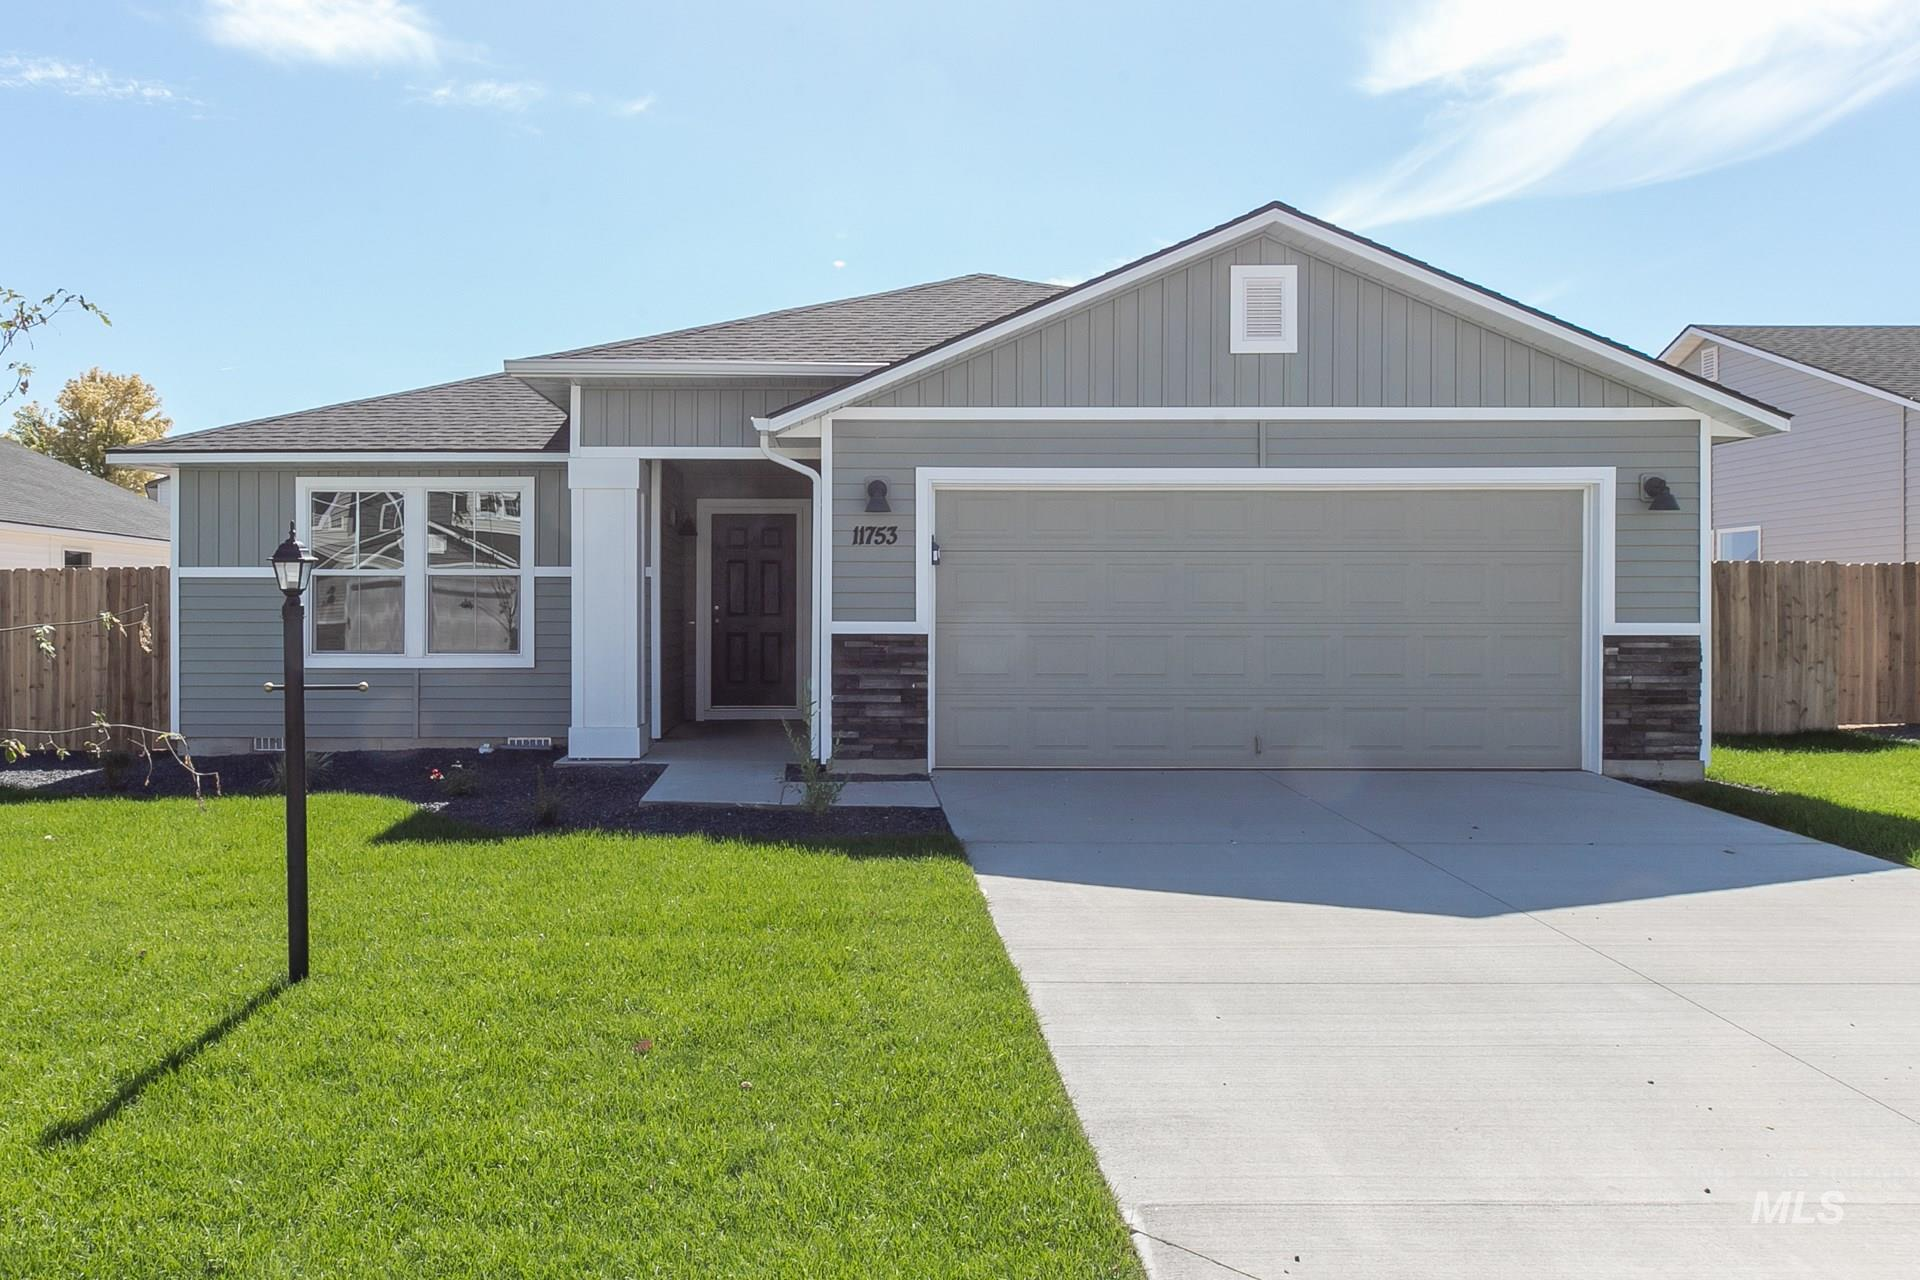 12789 Sondra St. Property Photo - Caldwell, ID real estate listing